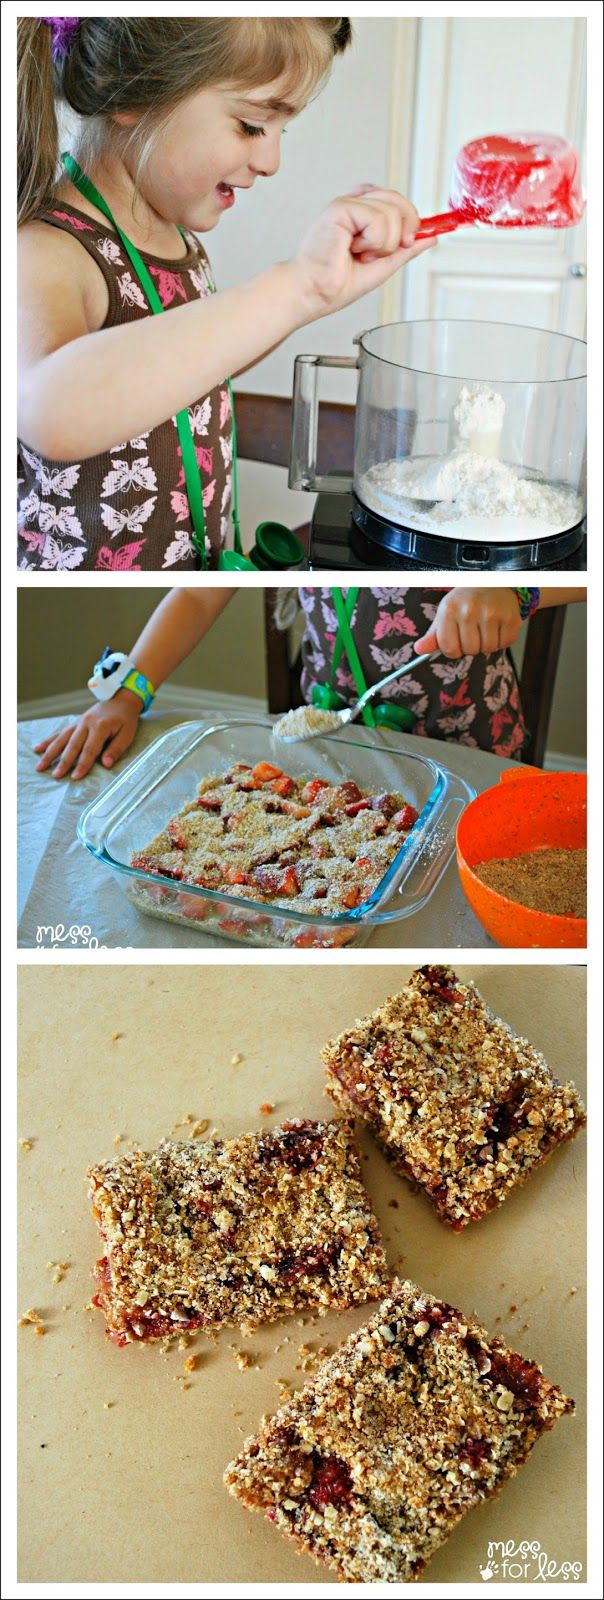 Strawberry Breakfast Bars - make these with the kids. They taste better than the cereal bars you find in store and are better for you!